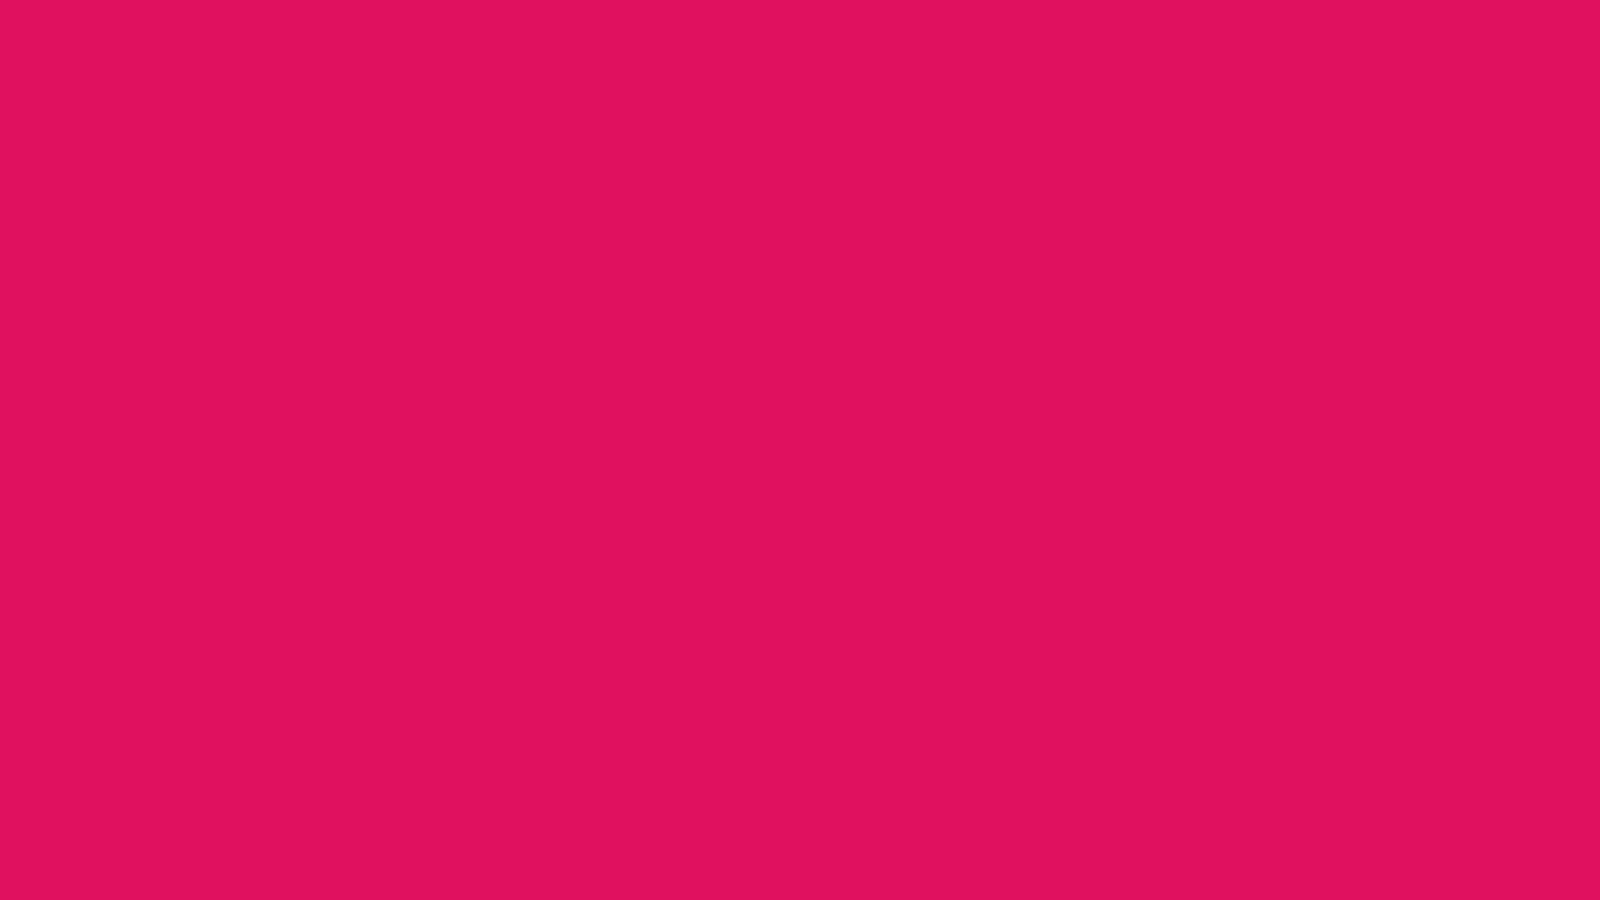 1600x900 Ruby Solid Color Background